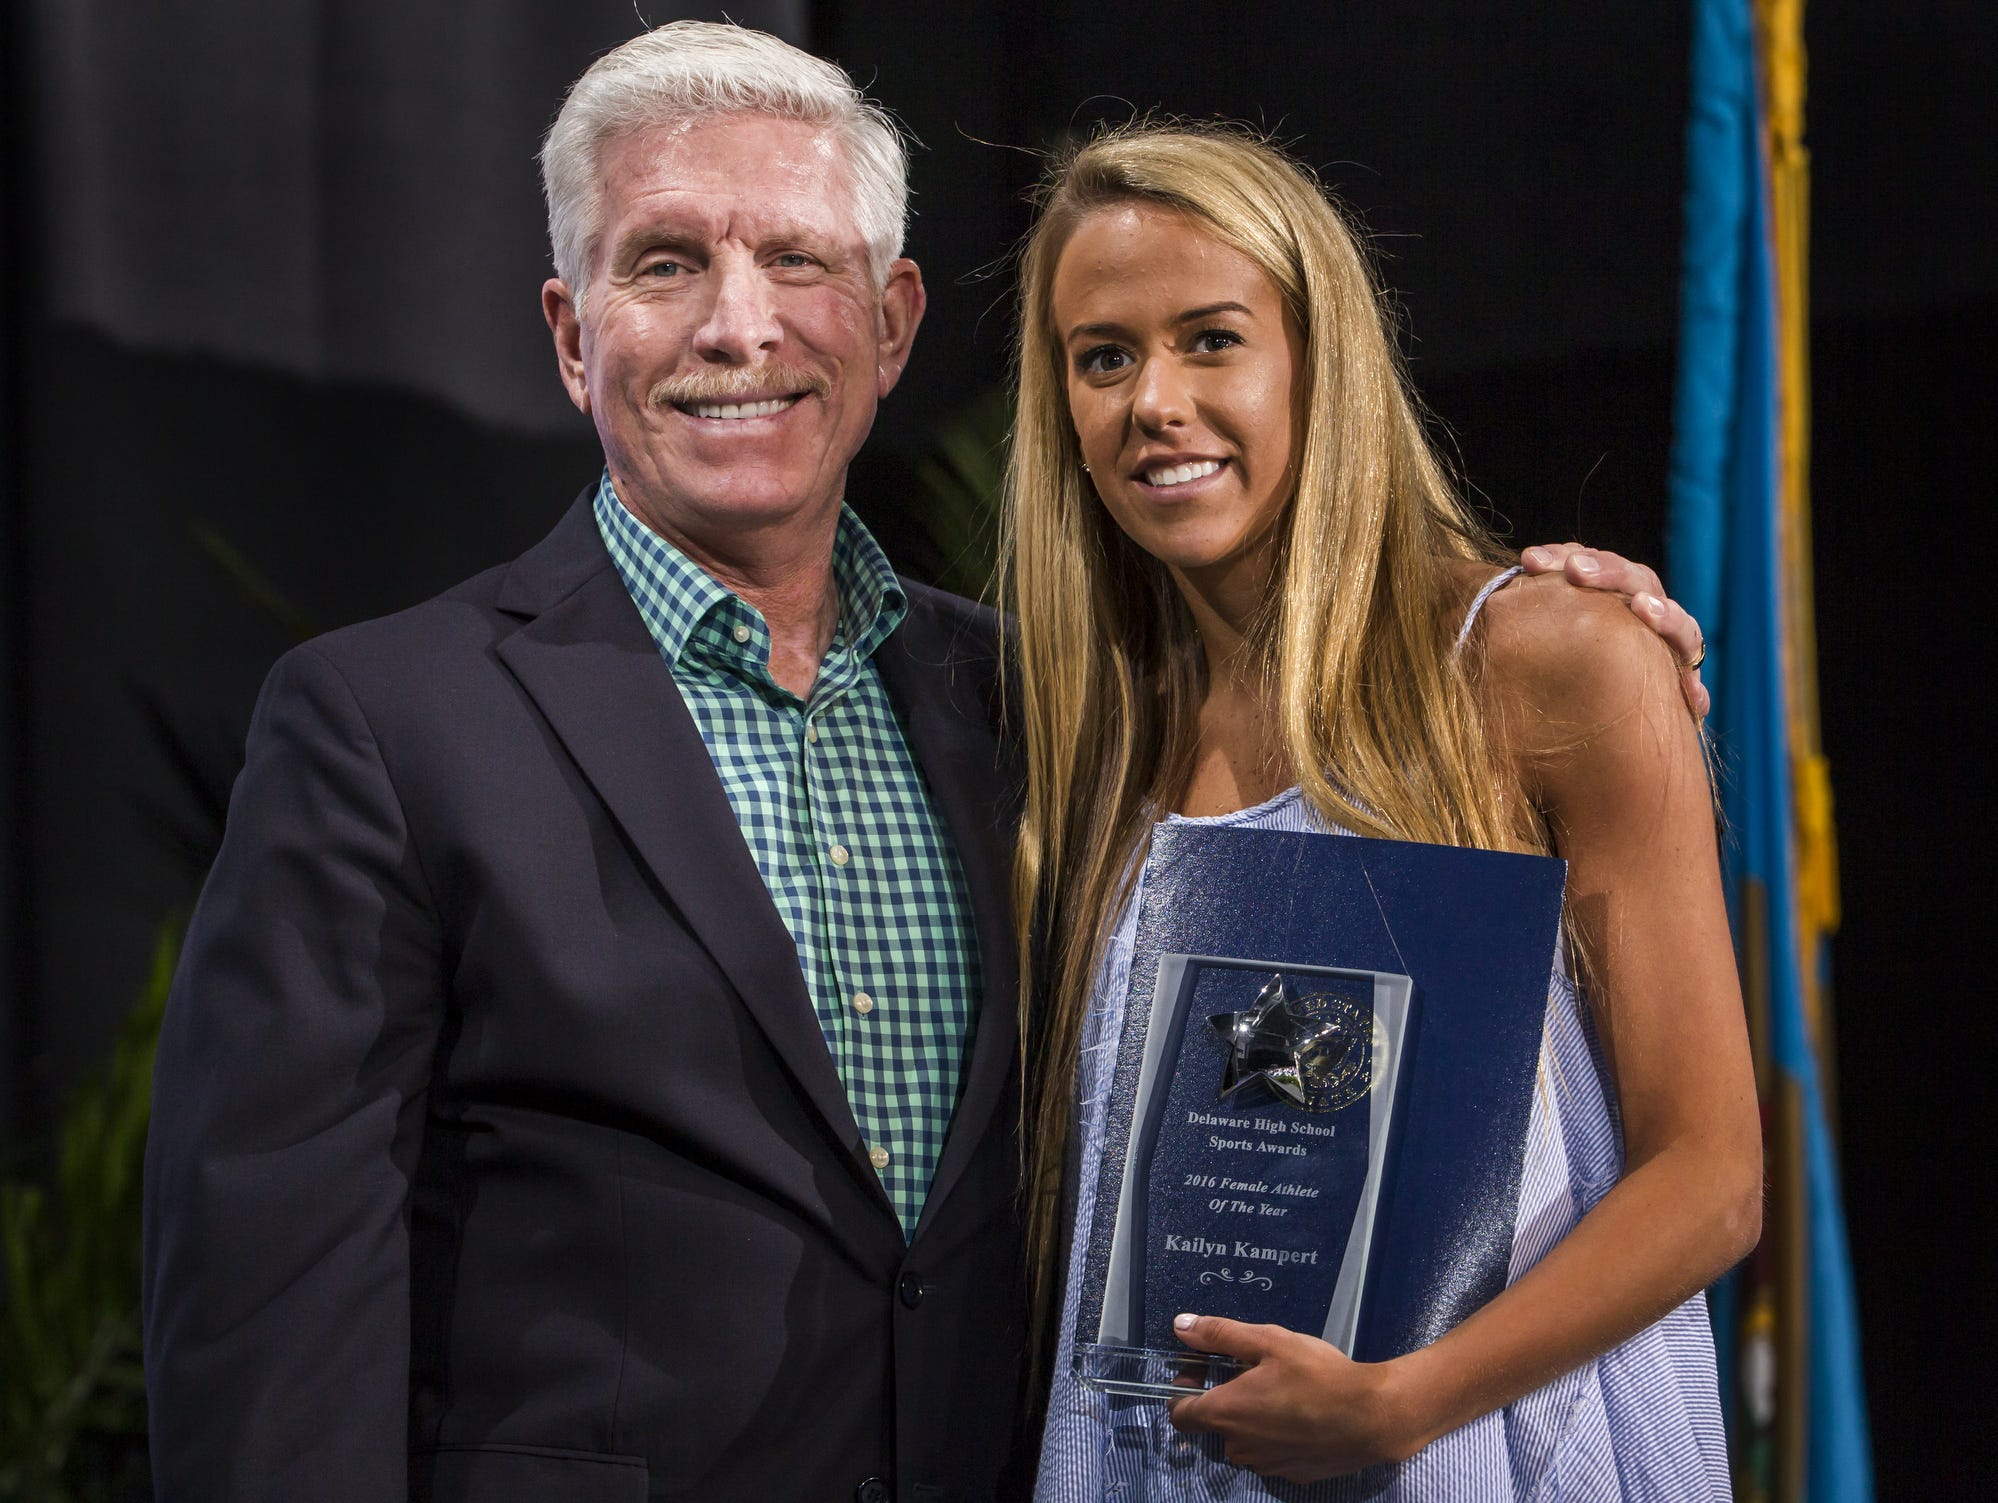 Ursuline's Kailyn Kampert poses with Mike Schmidt after being named the female athlete of the year at the Delaware Sports Awards banquet at the Bob Carpenter Center at the University of Delaware in Newark on Wednesday evening.